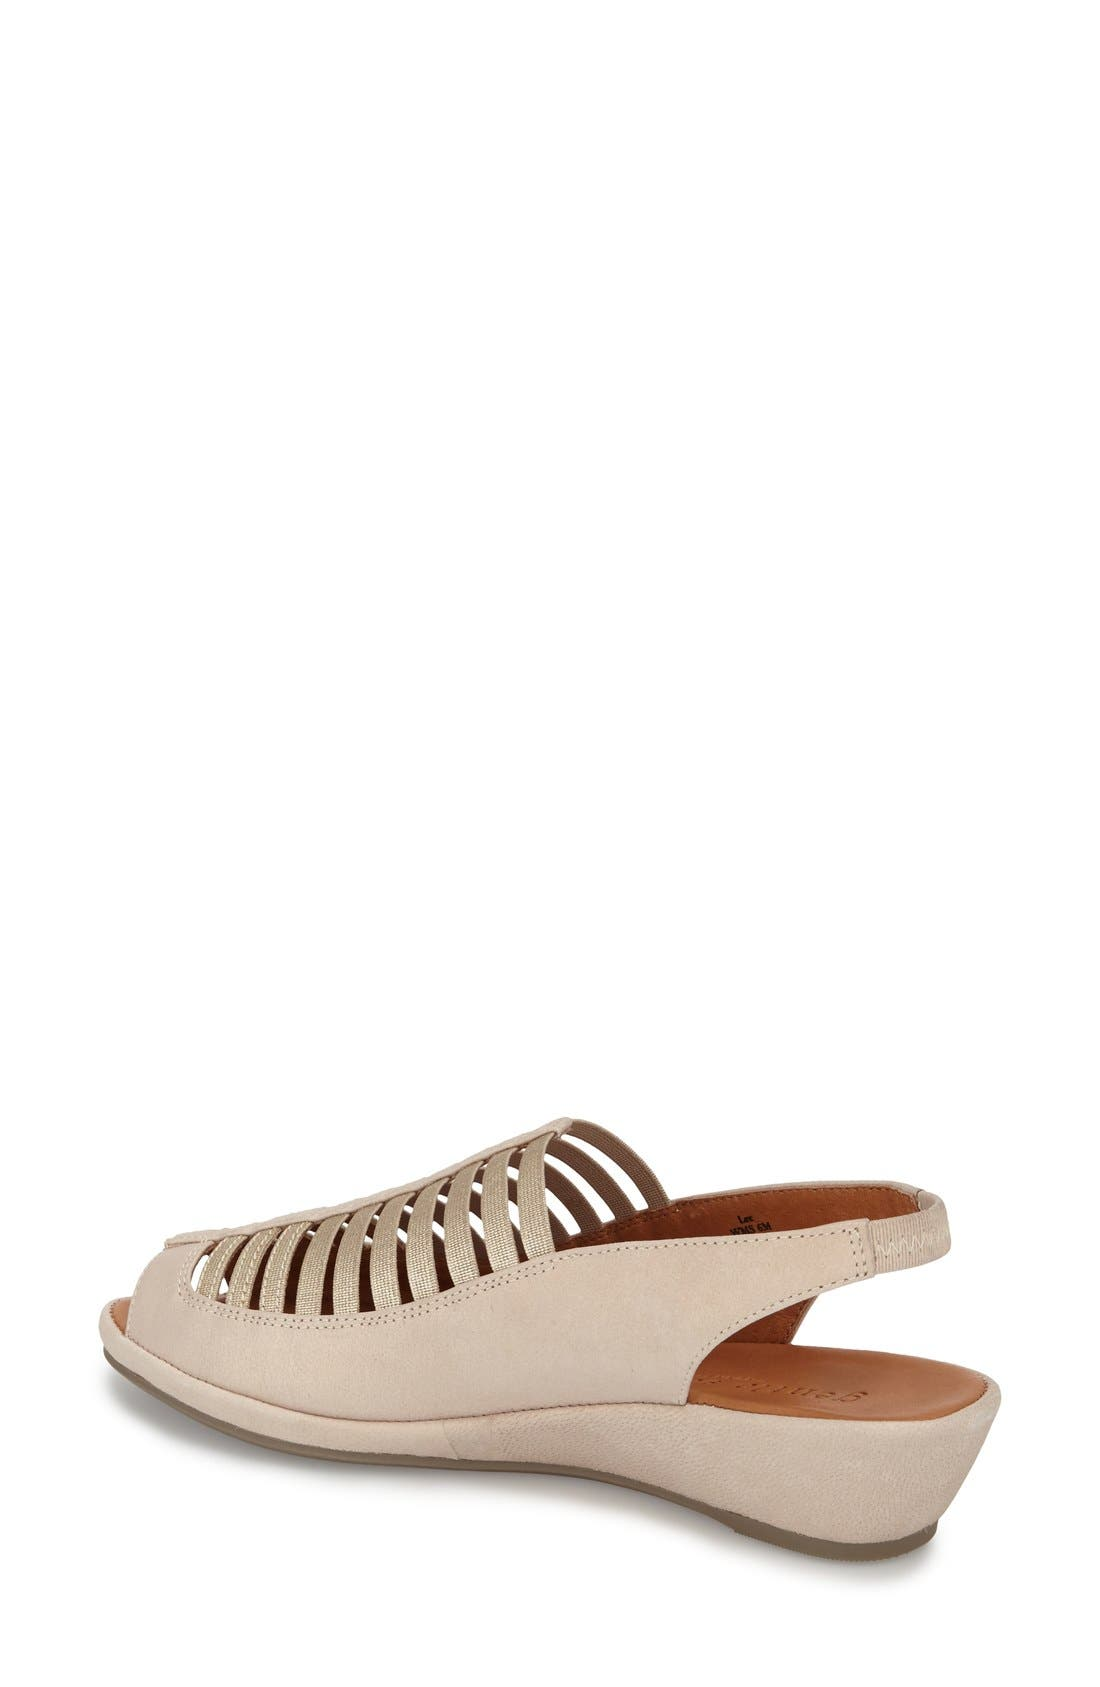 by Kenneth Cole 'Lee' Sandal,                             Alternate thumbnail 12, color,